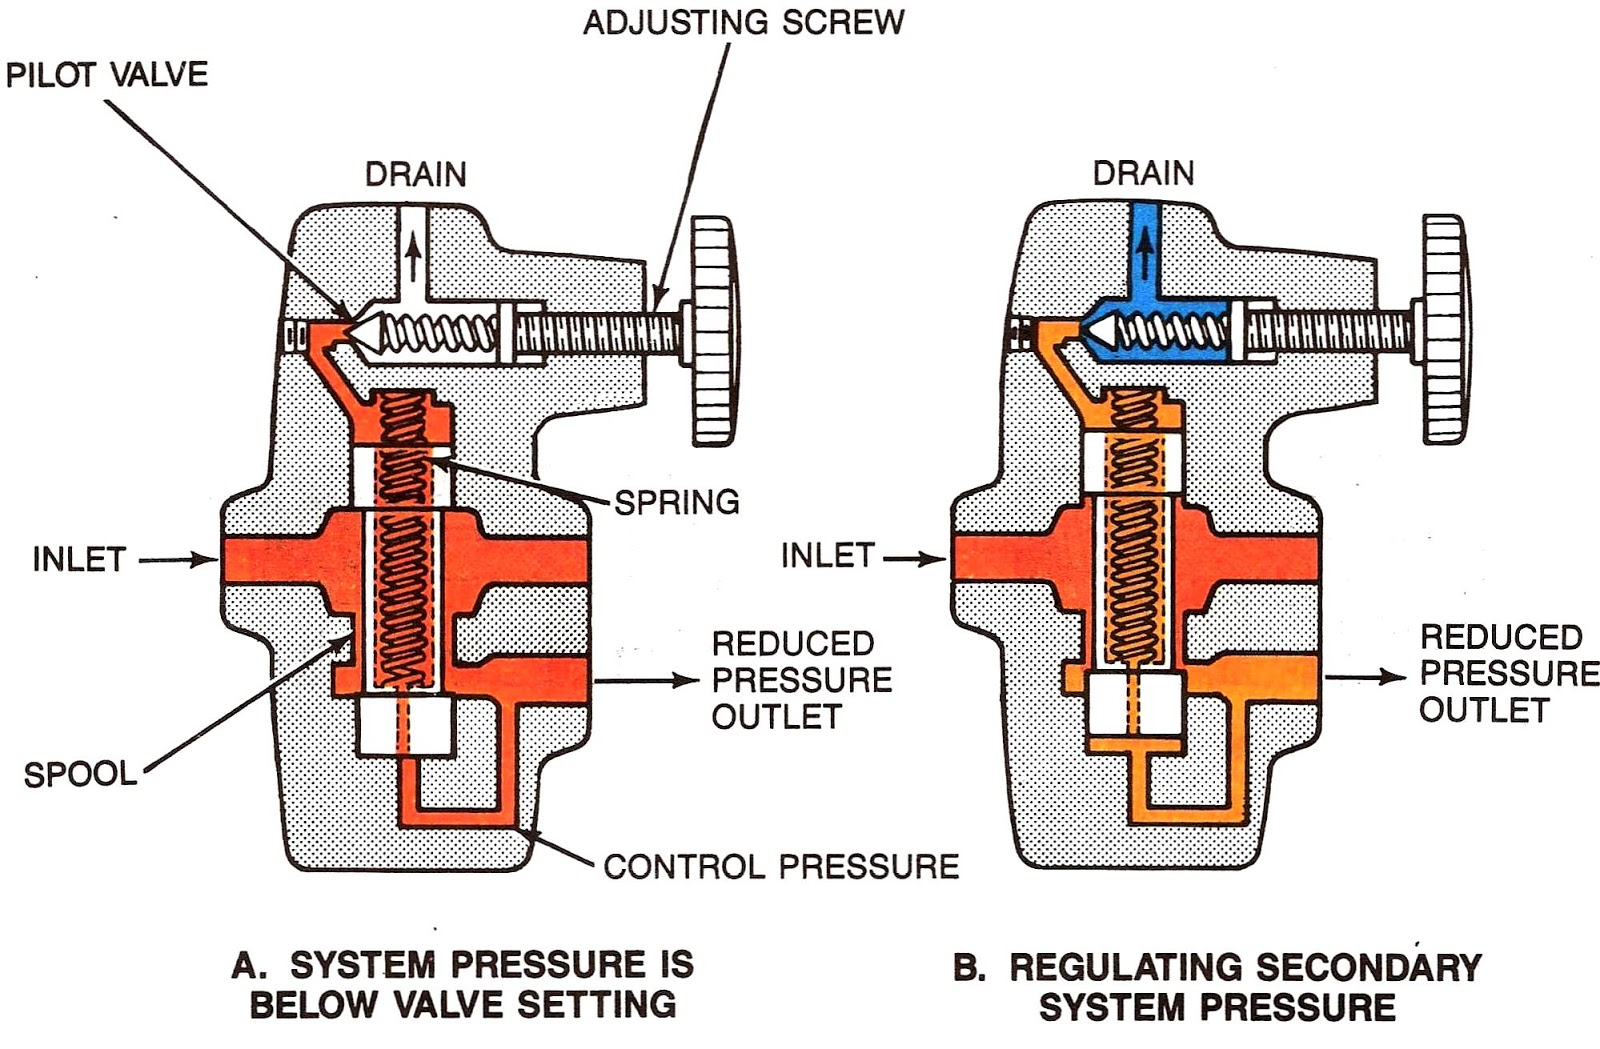 Spooling In Operating System With Diagram Wiring For Home Alarm Mariners Repository Hydraulics 2 Pressure Control